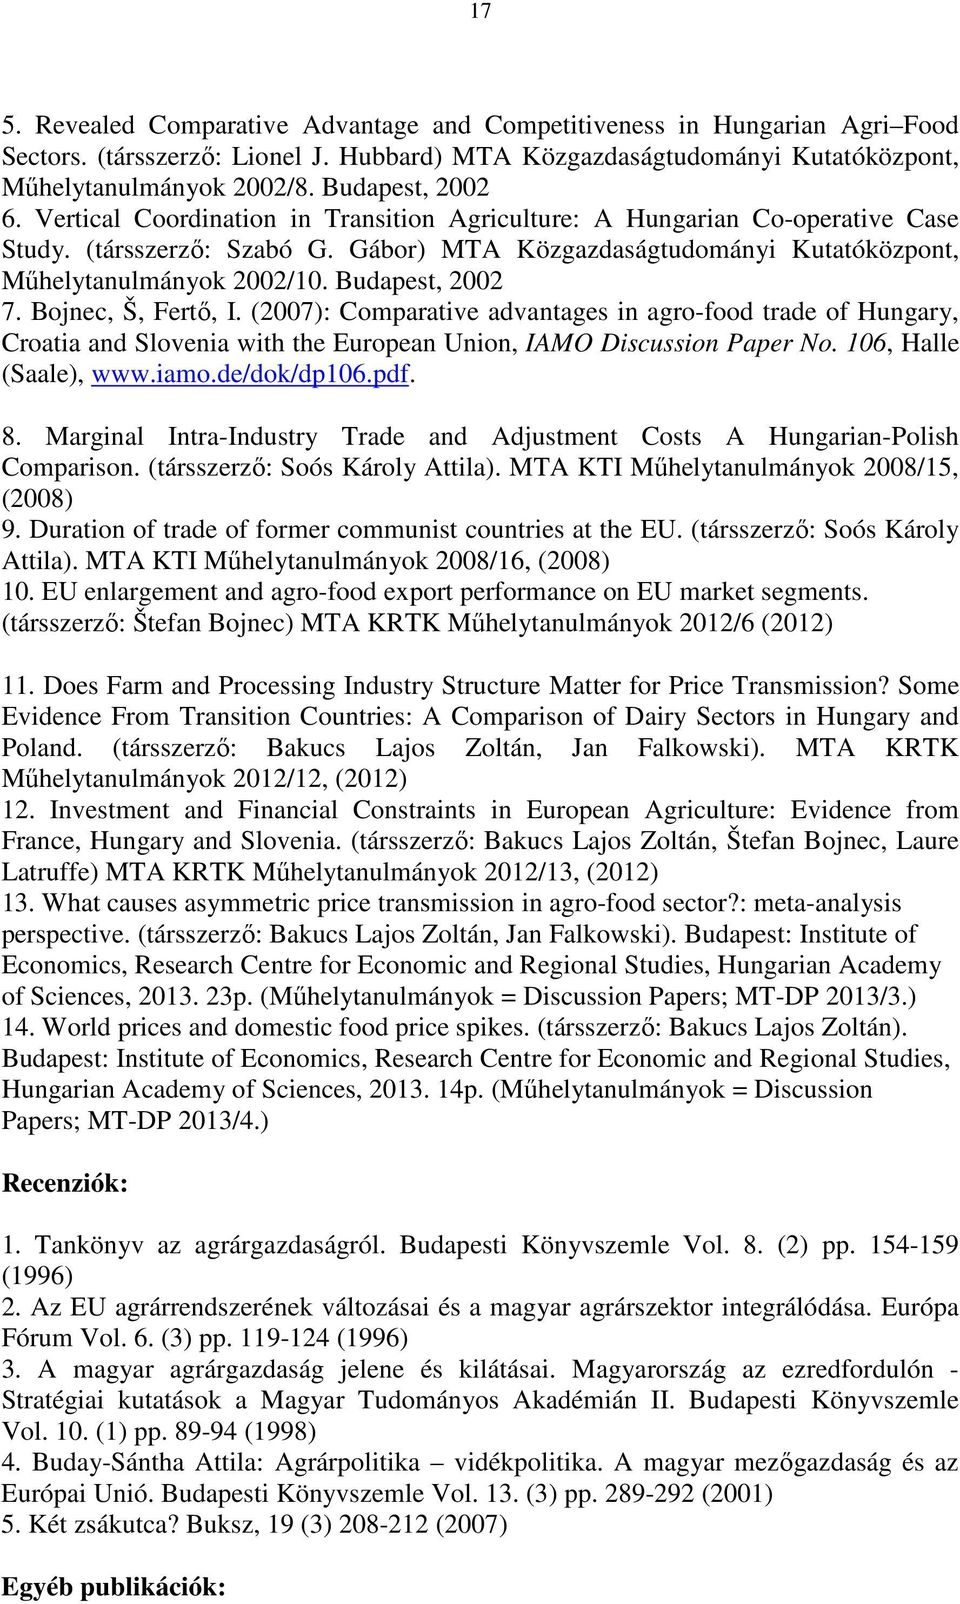 Budapest, 2002 7. Bojnec, Š, Fertő, I. (2007): Comparative advantages in agro-food trade of Hungary, Croatia and Slovenia with the European Union, IAMO Discussion Paper No. 106, Halle (Saale), www.